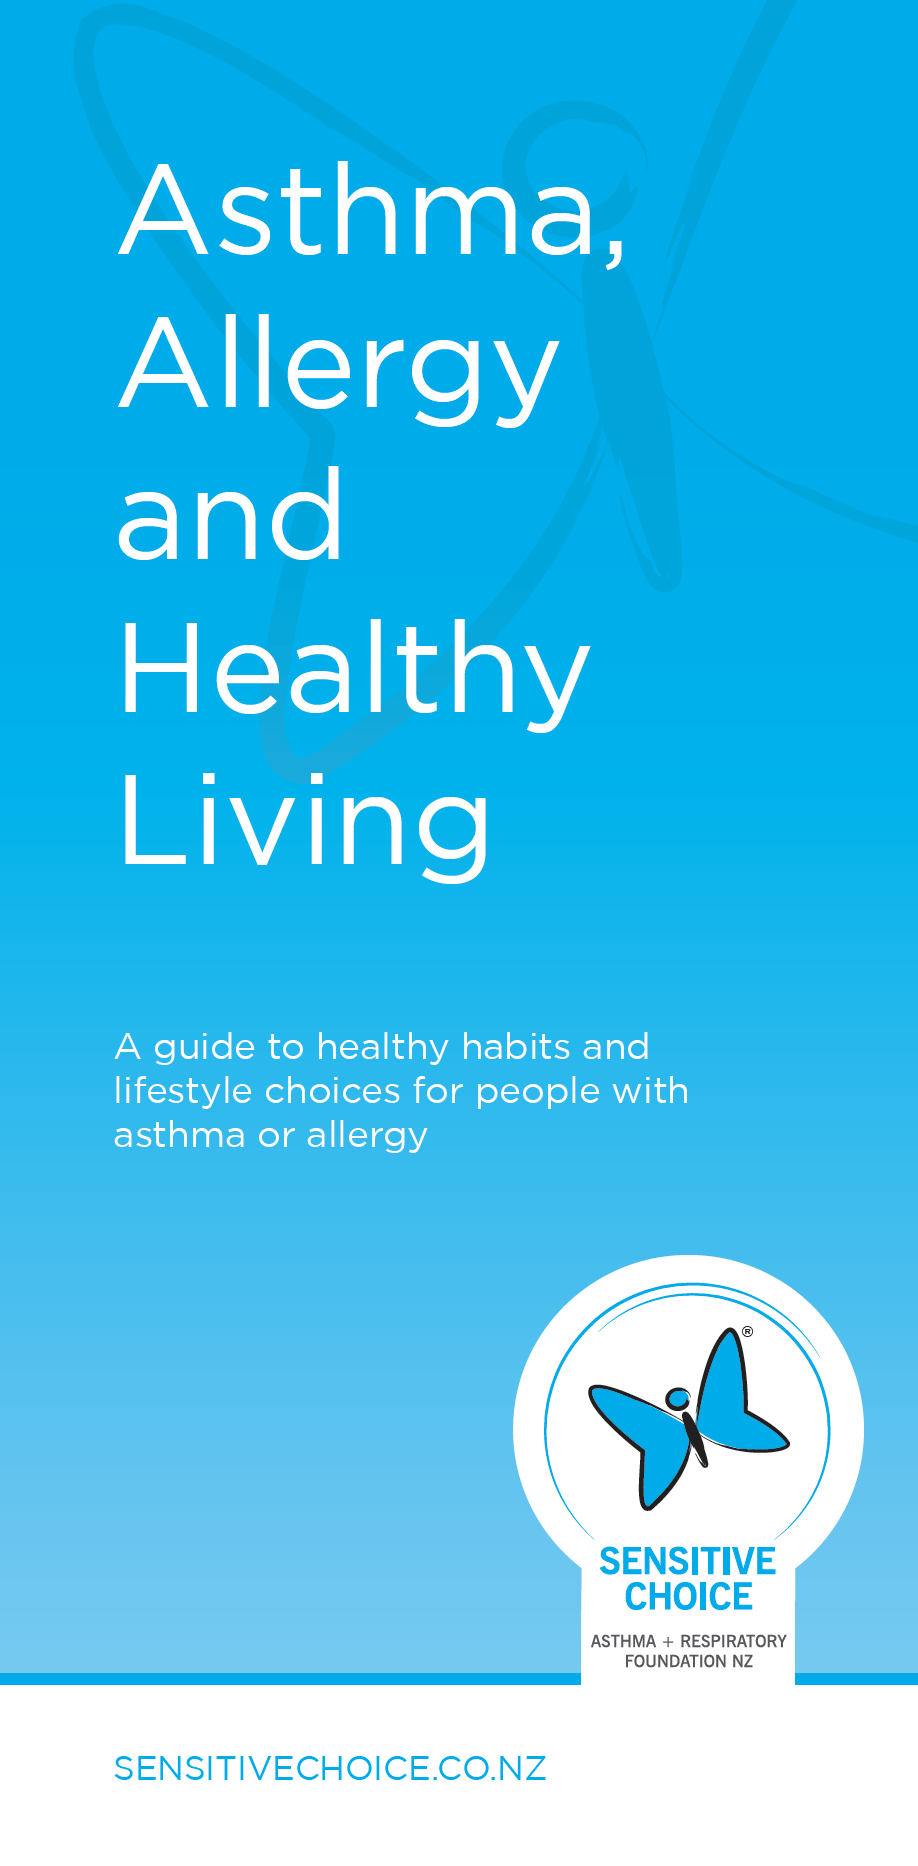 Asthma, Allergy and Healthy Living - Sensitive Choice